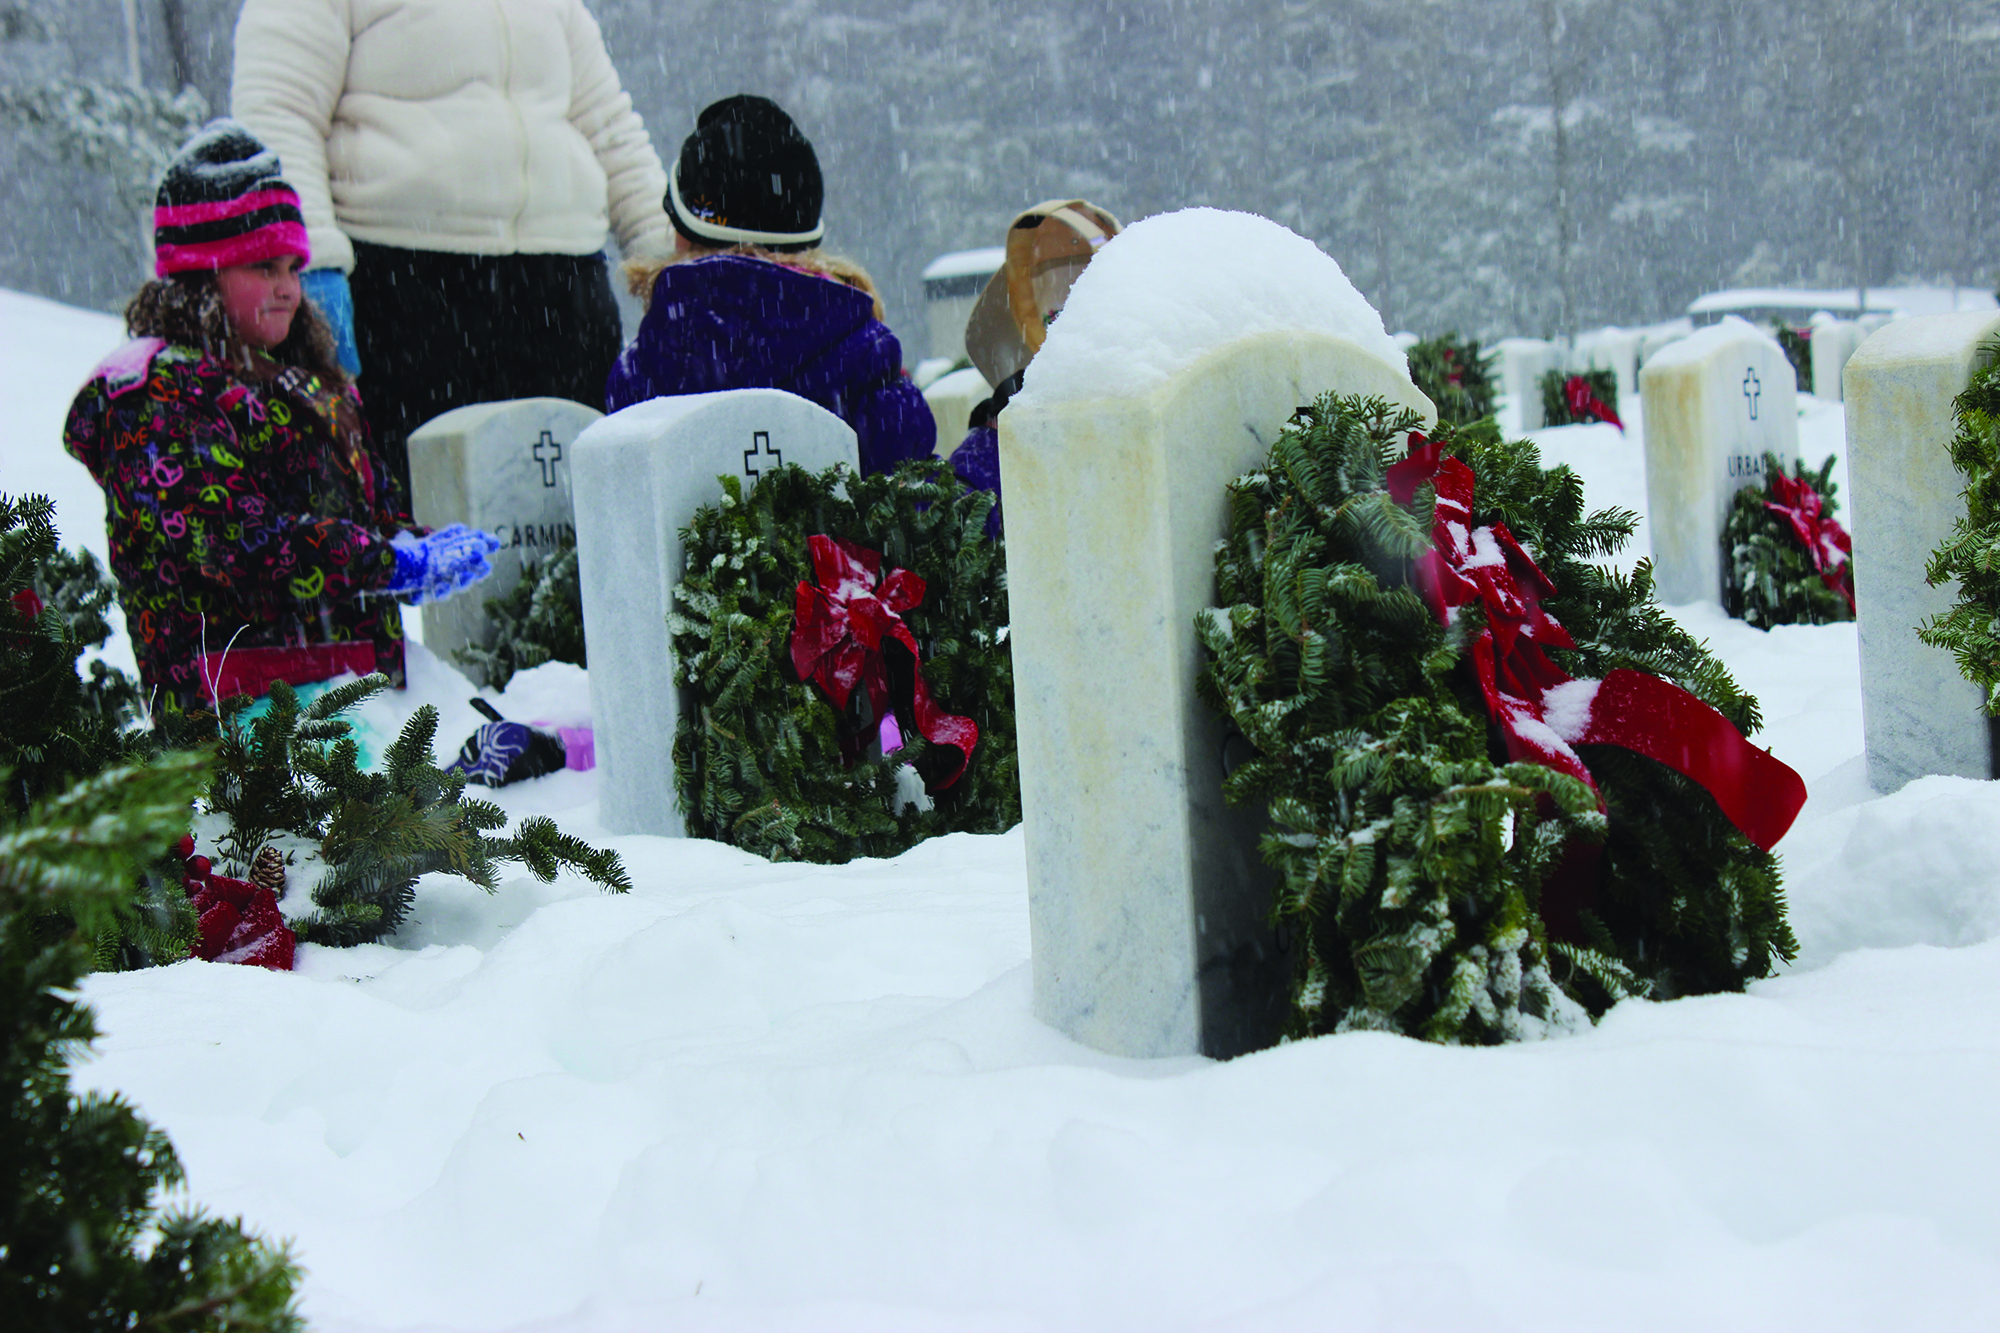 Children play in the snow during the Wreaths Across America event in Springvale on Saturday. RYDER SCHUMACHER/Journal tribune